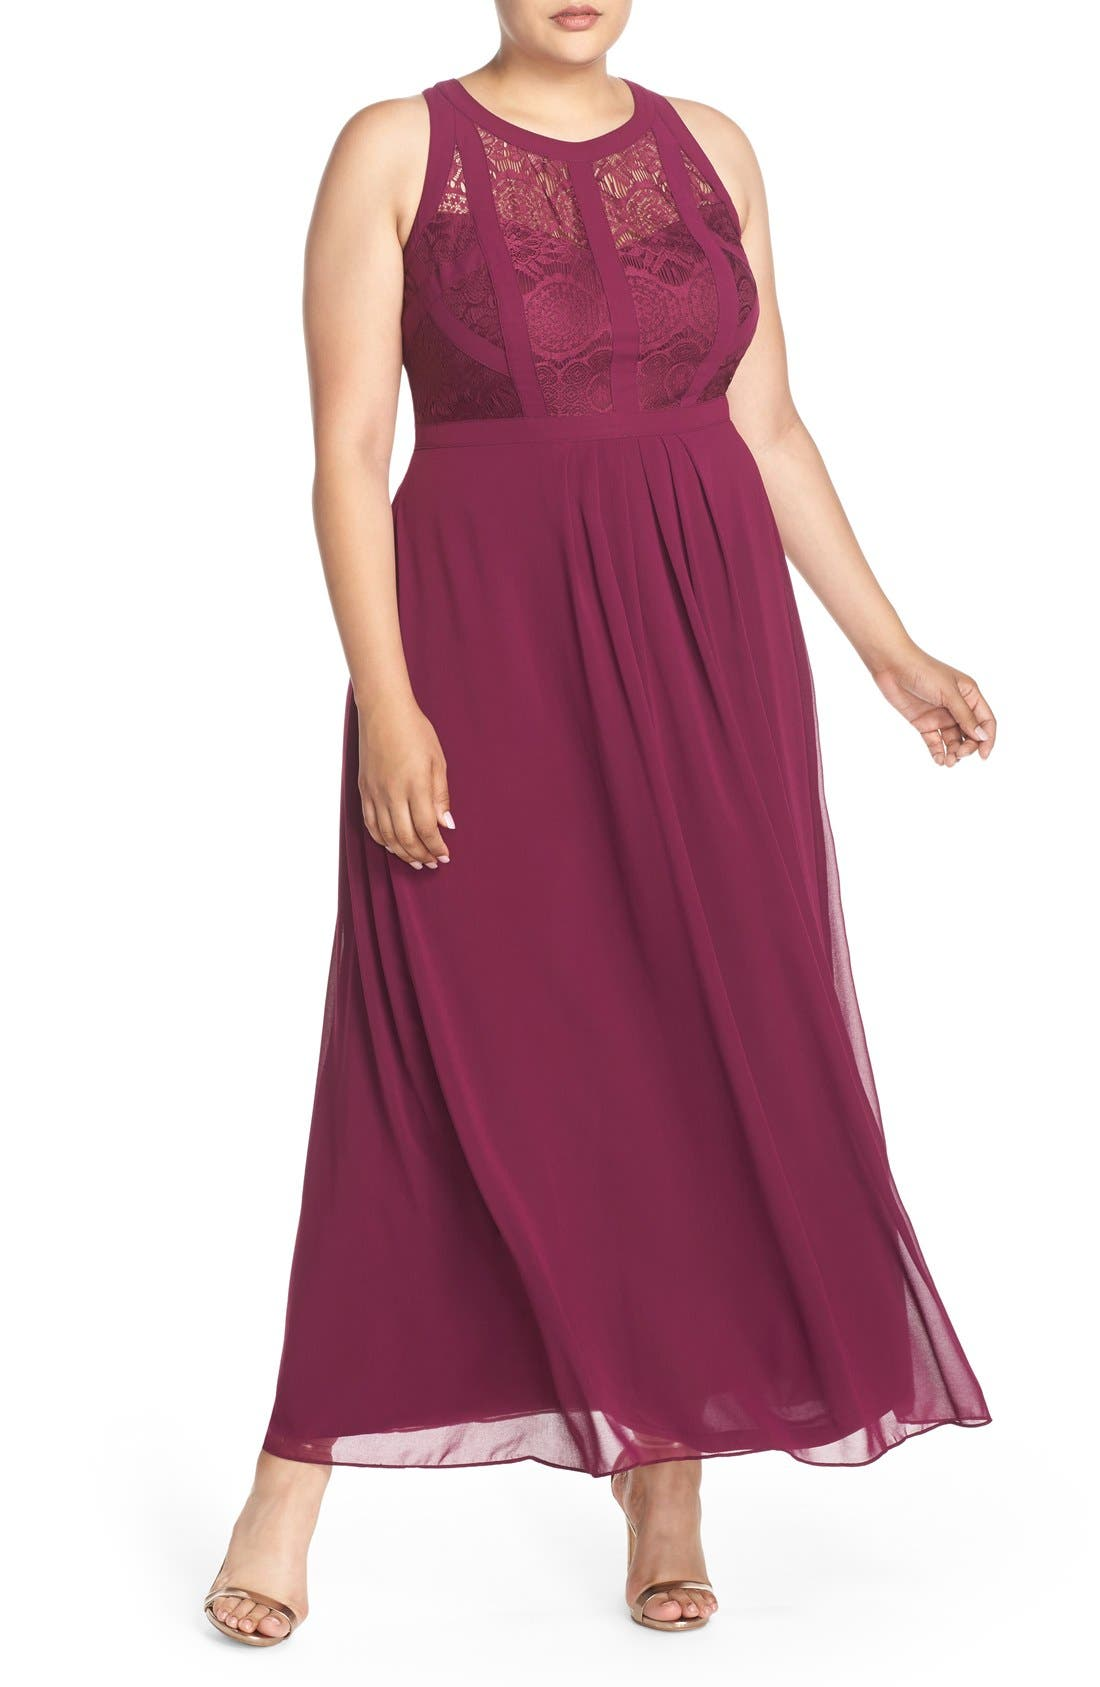 Alternate Image 1 Selected - City Chic Paneled Lace Bodice Gown (Plus Size)